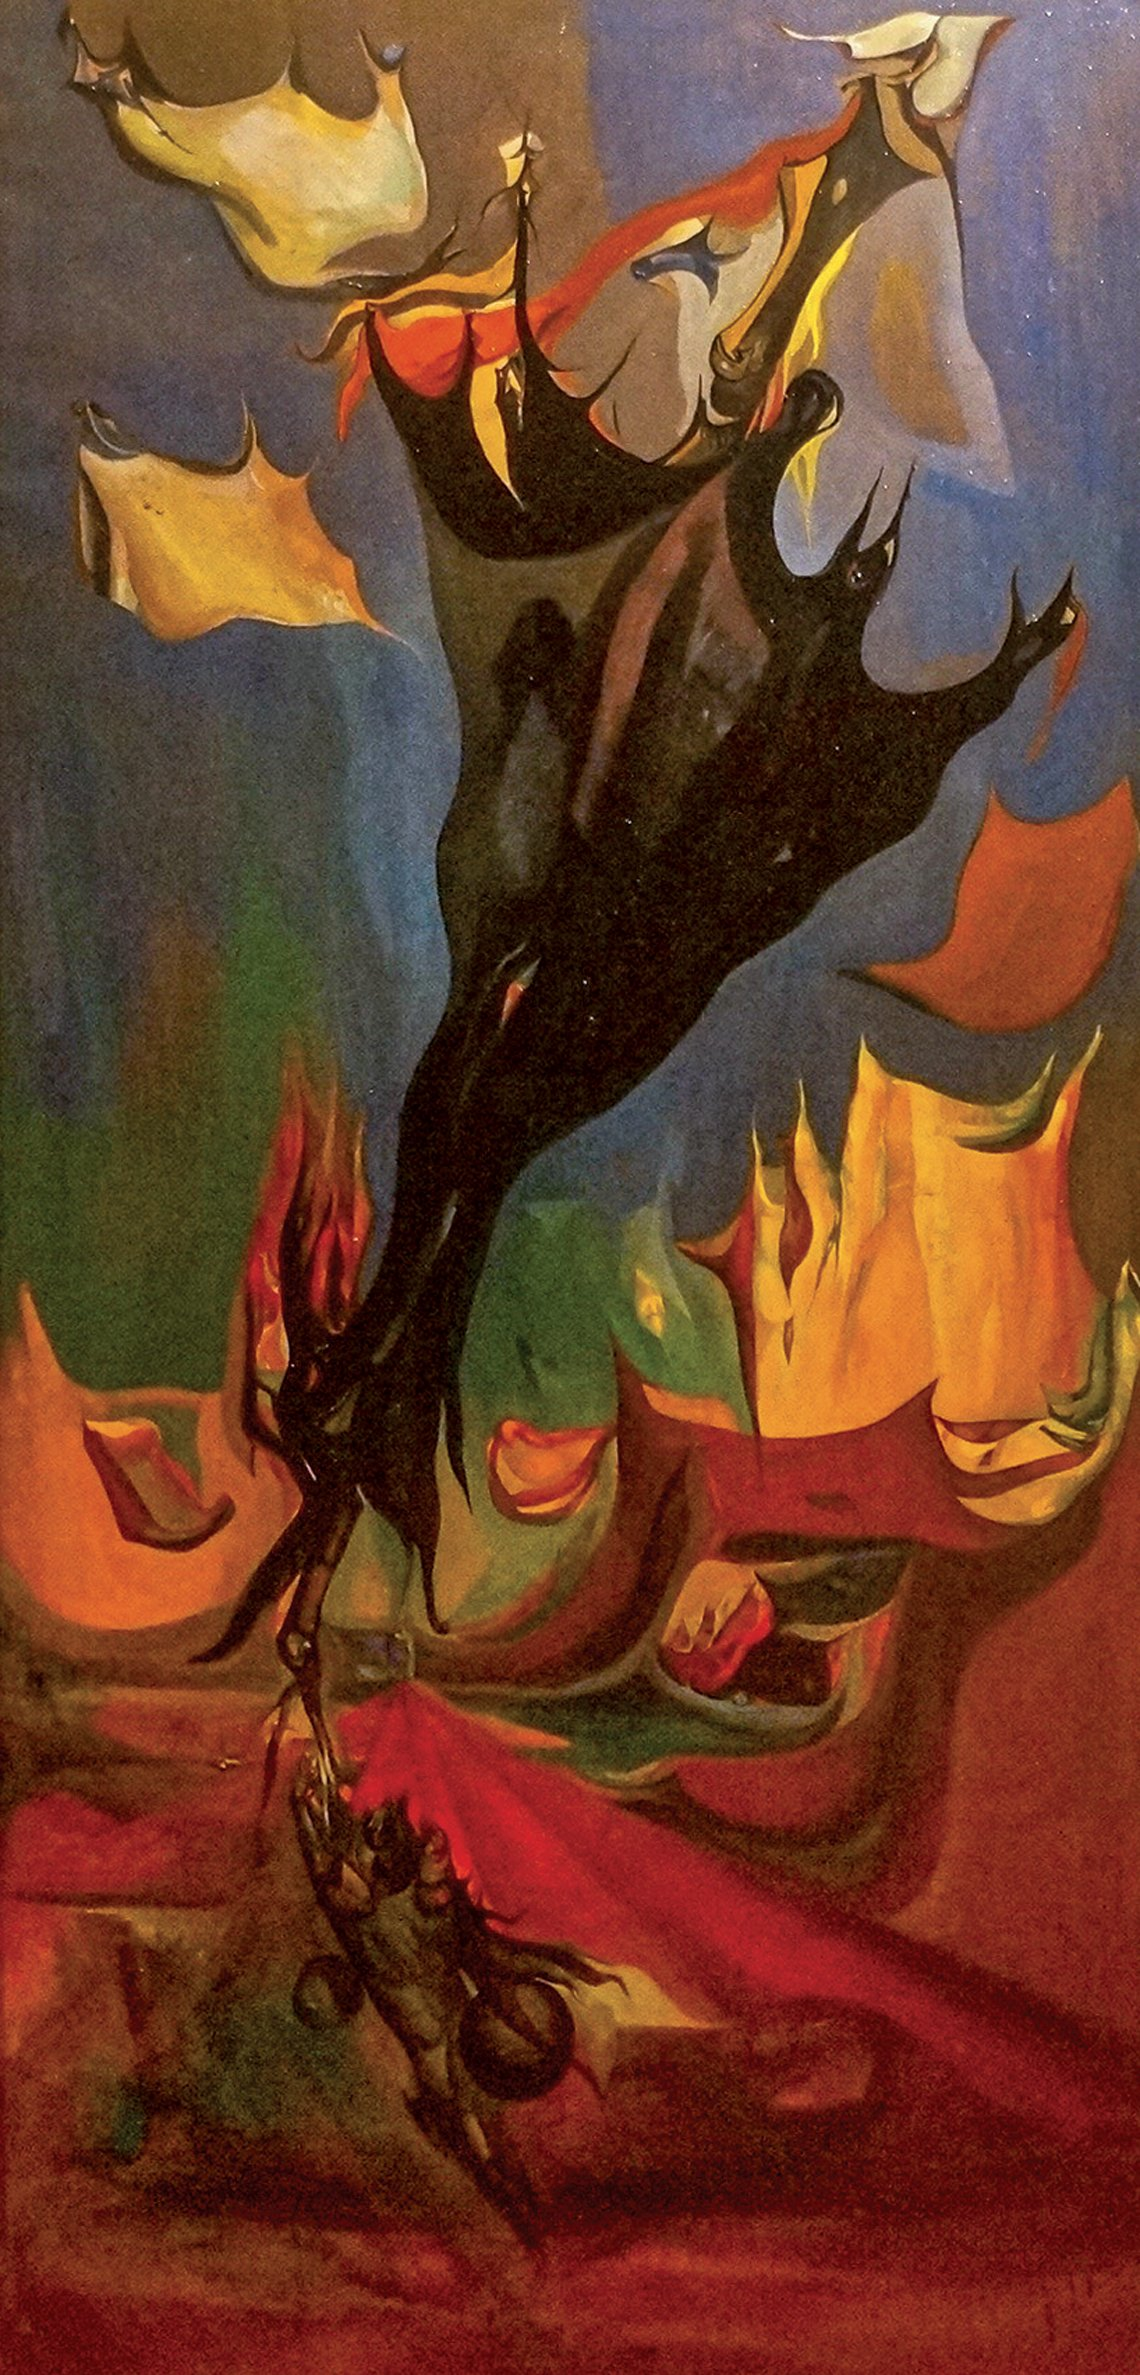 Leon kelly 1901 1982 gigantic umbrella 1940 oil on canvas 51 x 24 inches